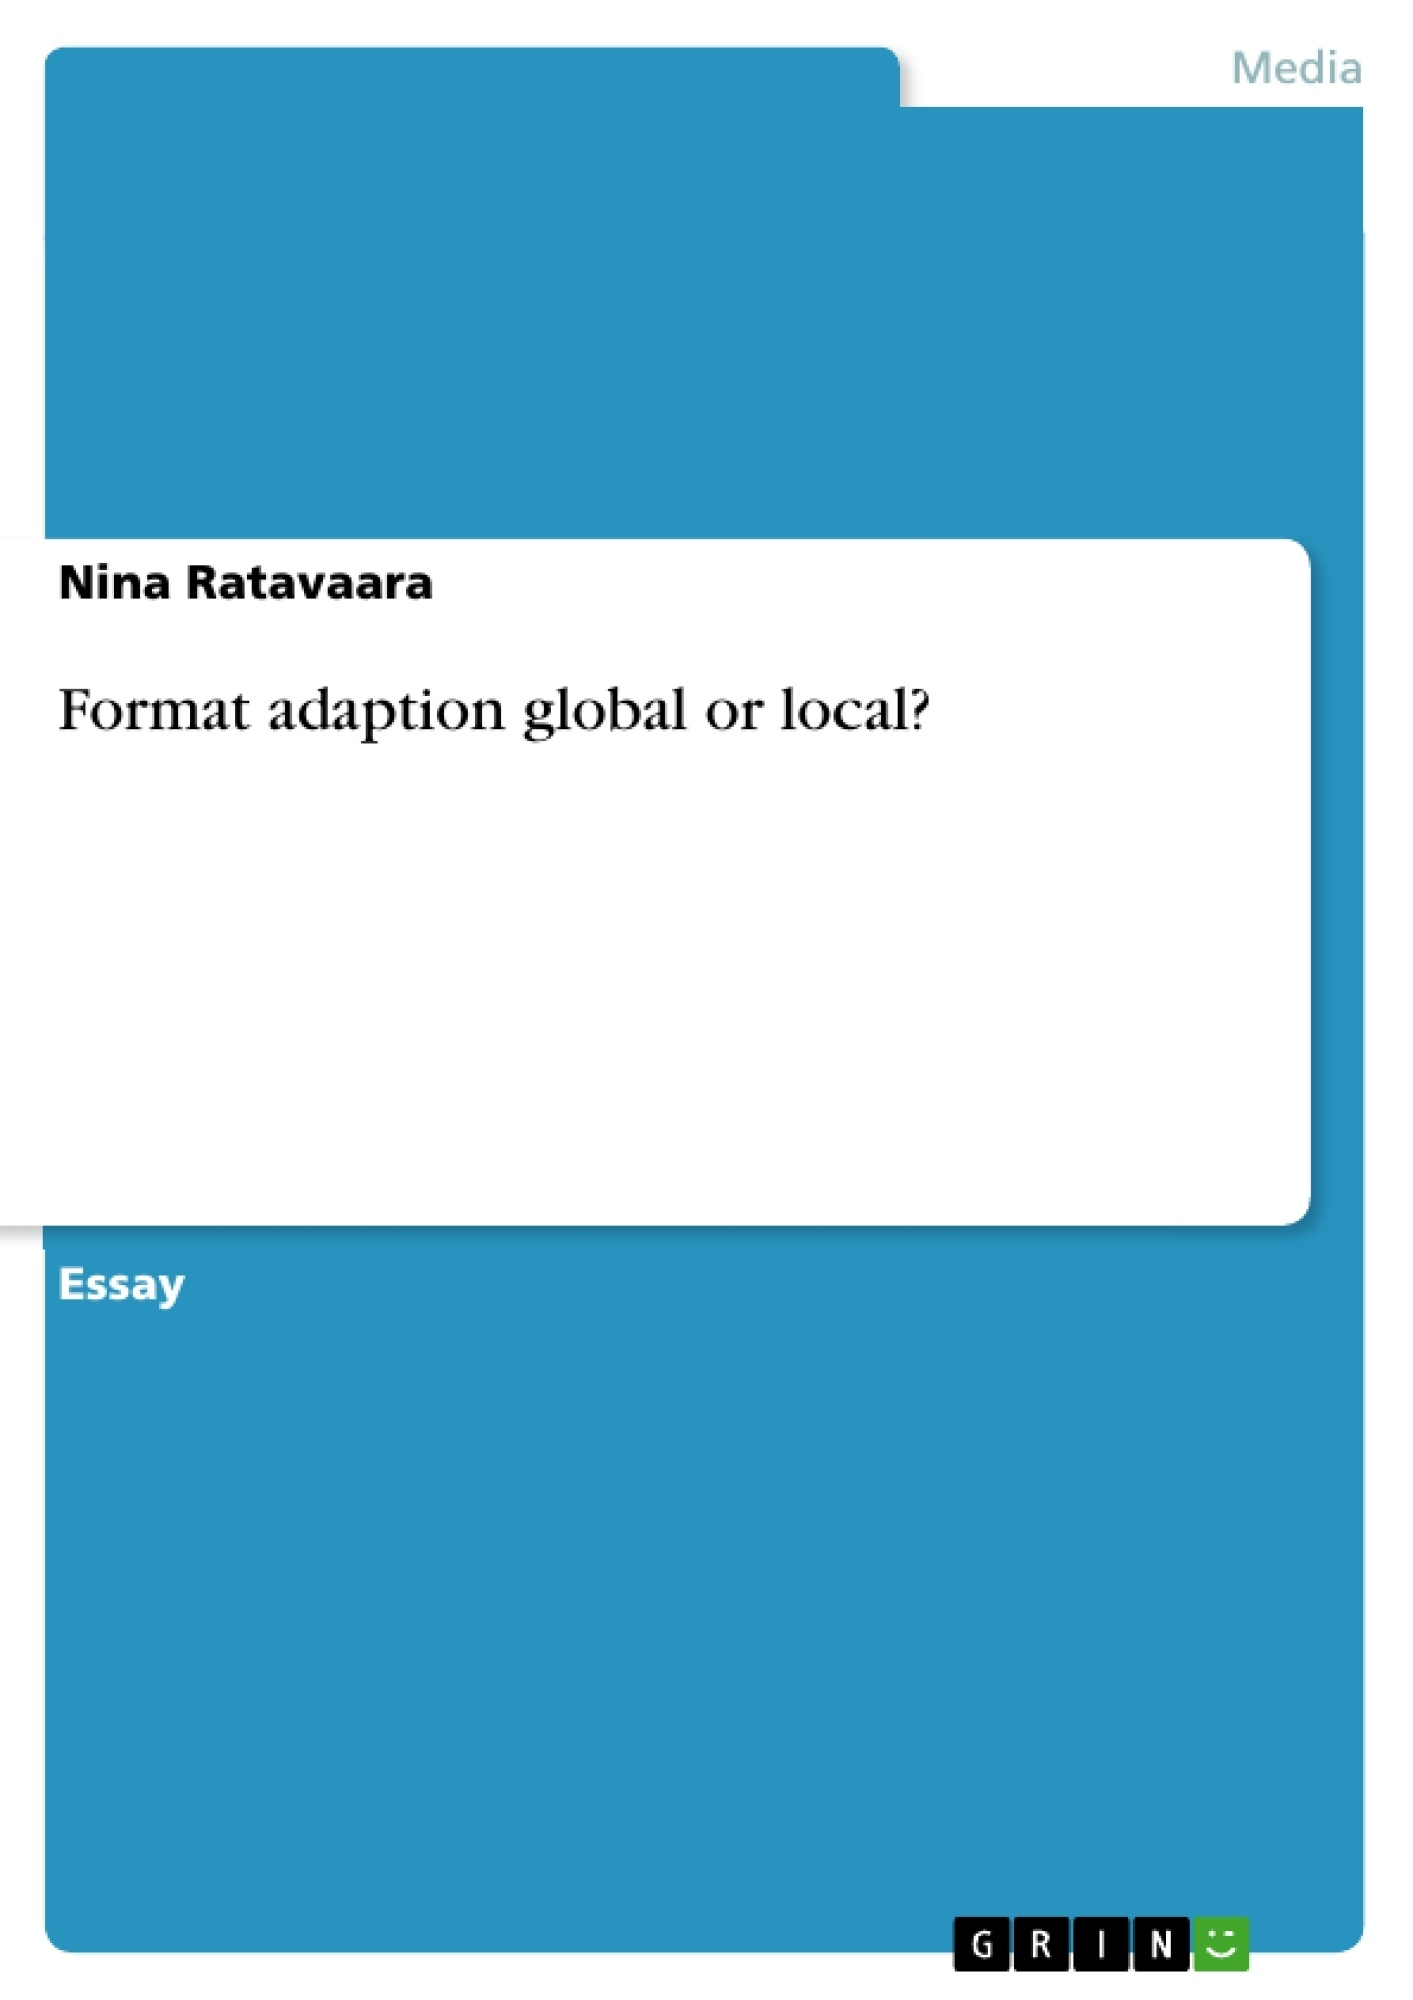 Title: Format adaption global or local?